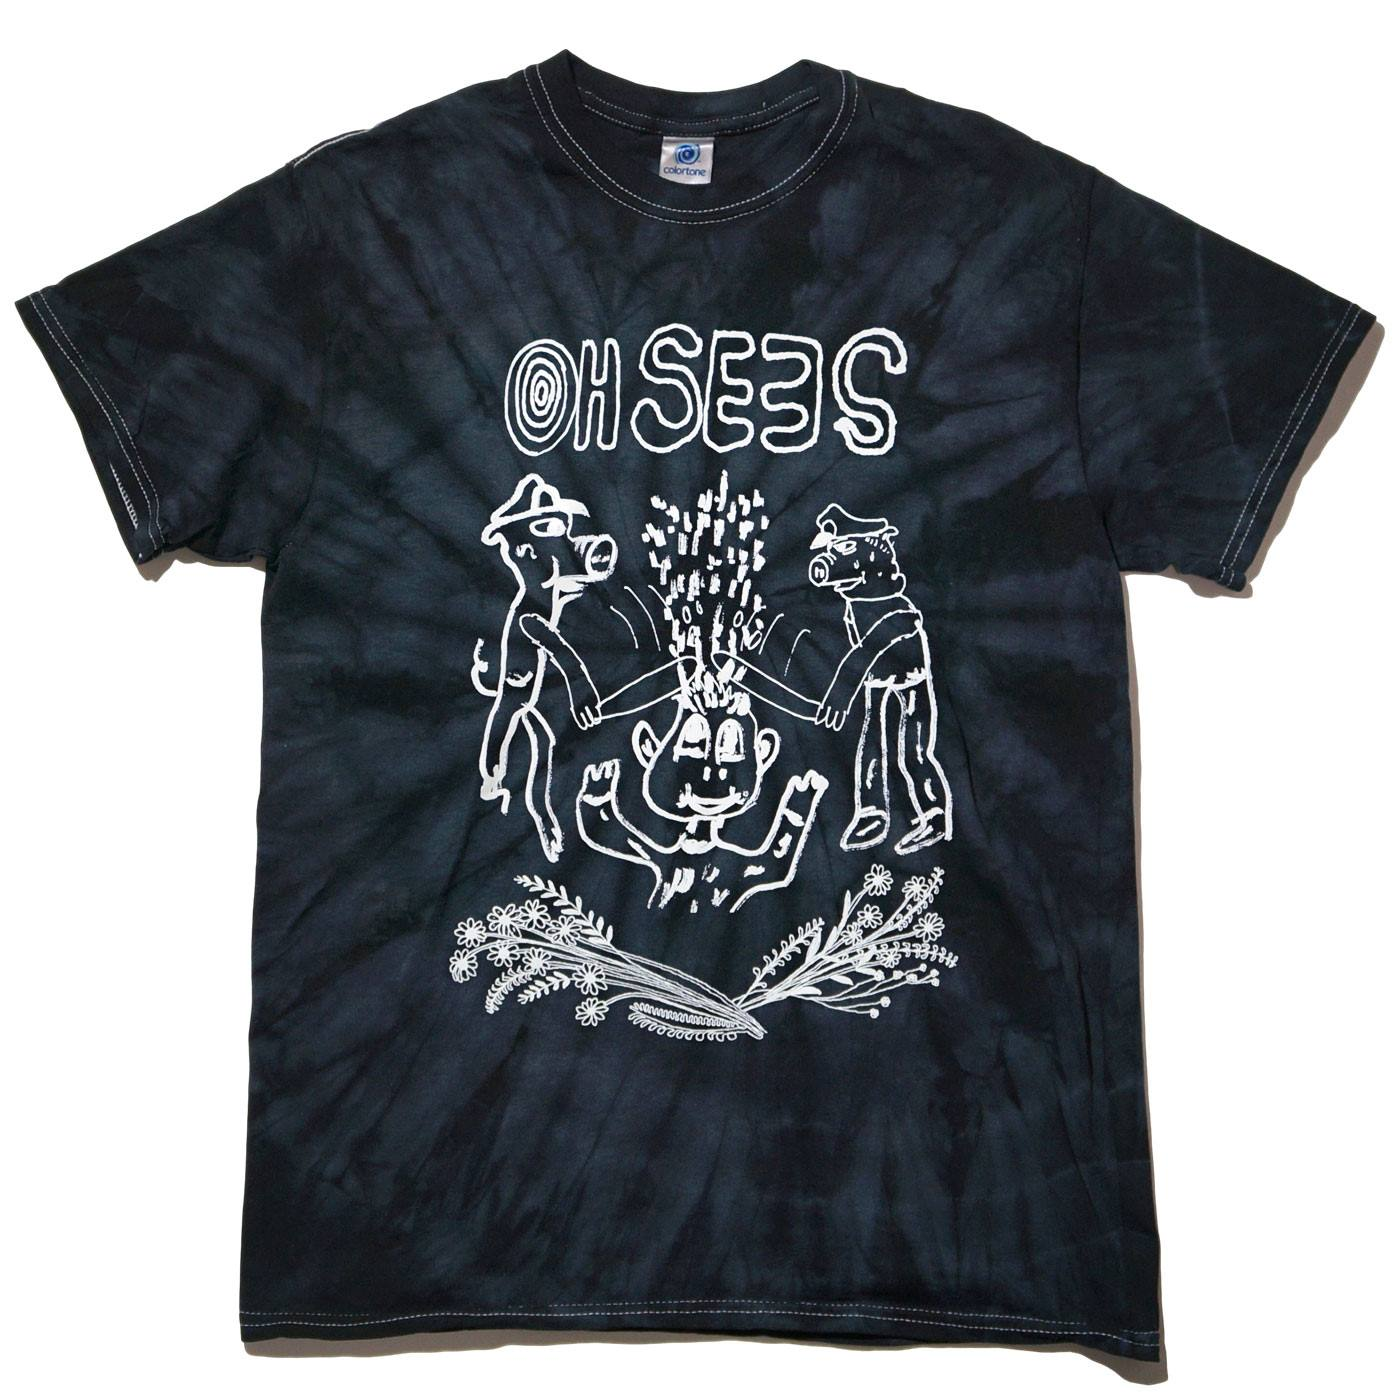 Oh Sees Tシャツ Joe Roberts/Pigs Tee - Black Tie Dye